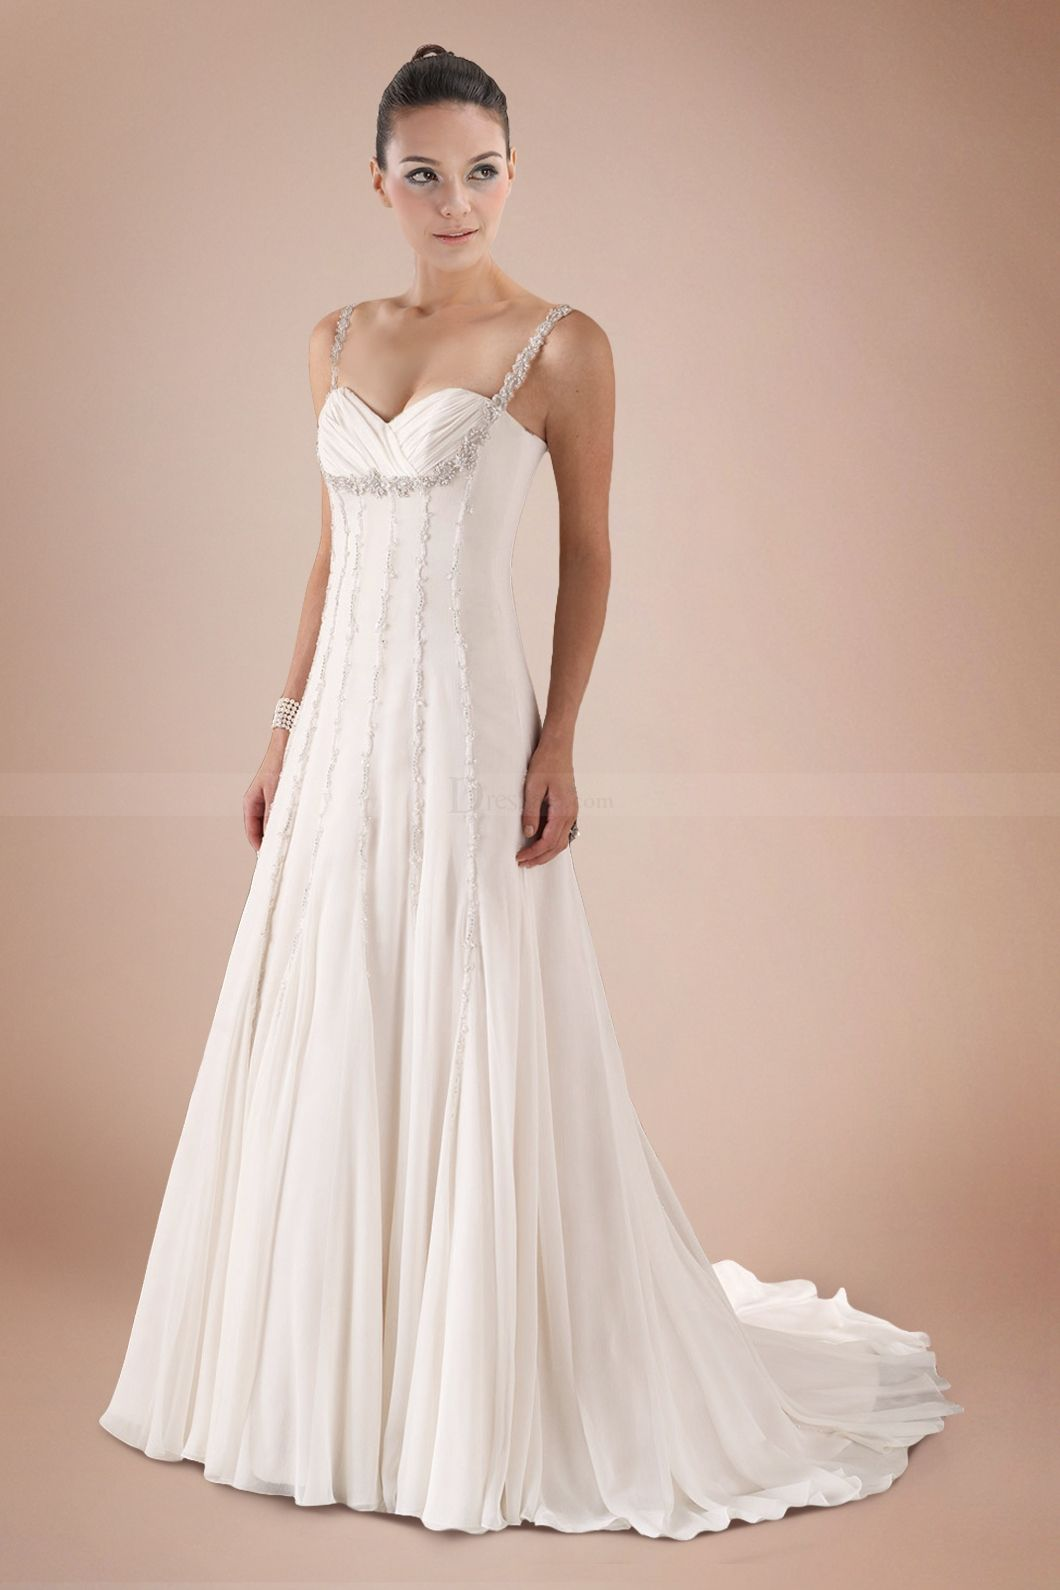 Beach wedding looks for bride  I like this Do you think I should buy it  Beautiful clothes